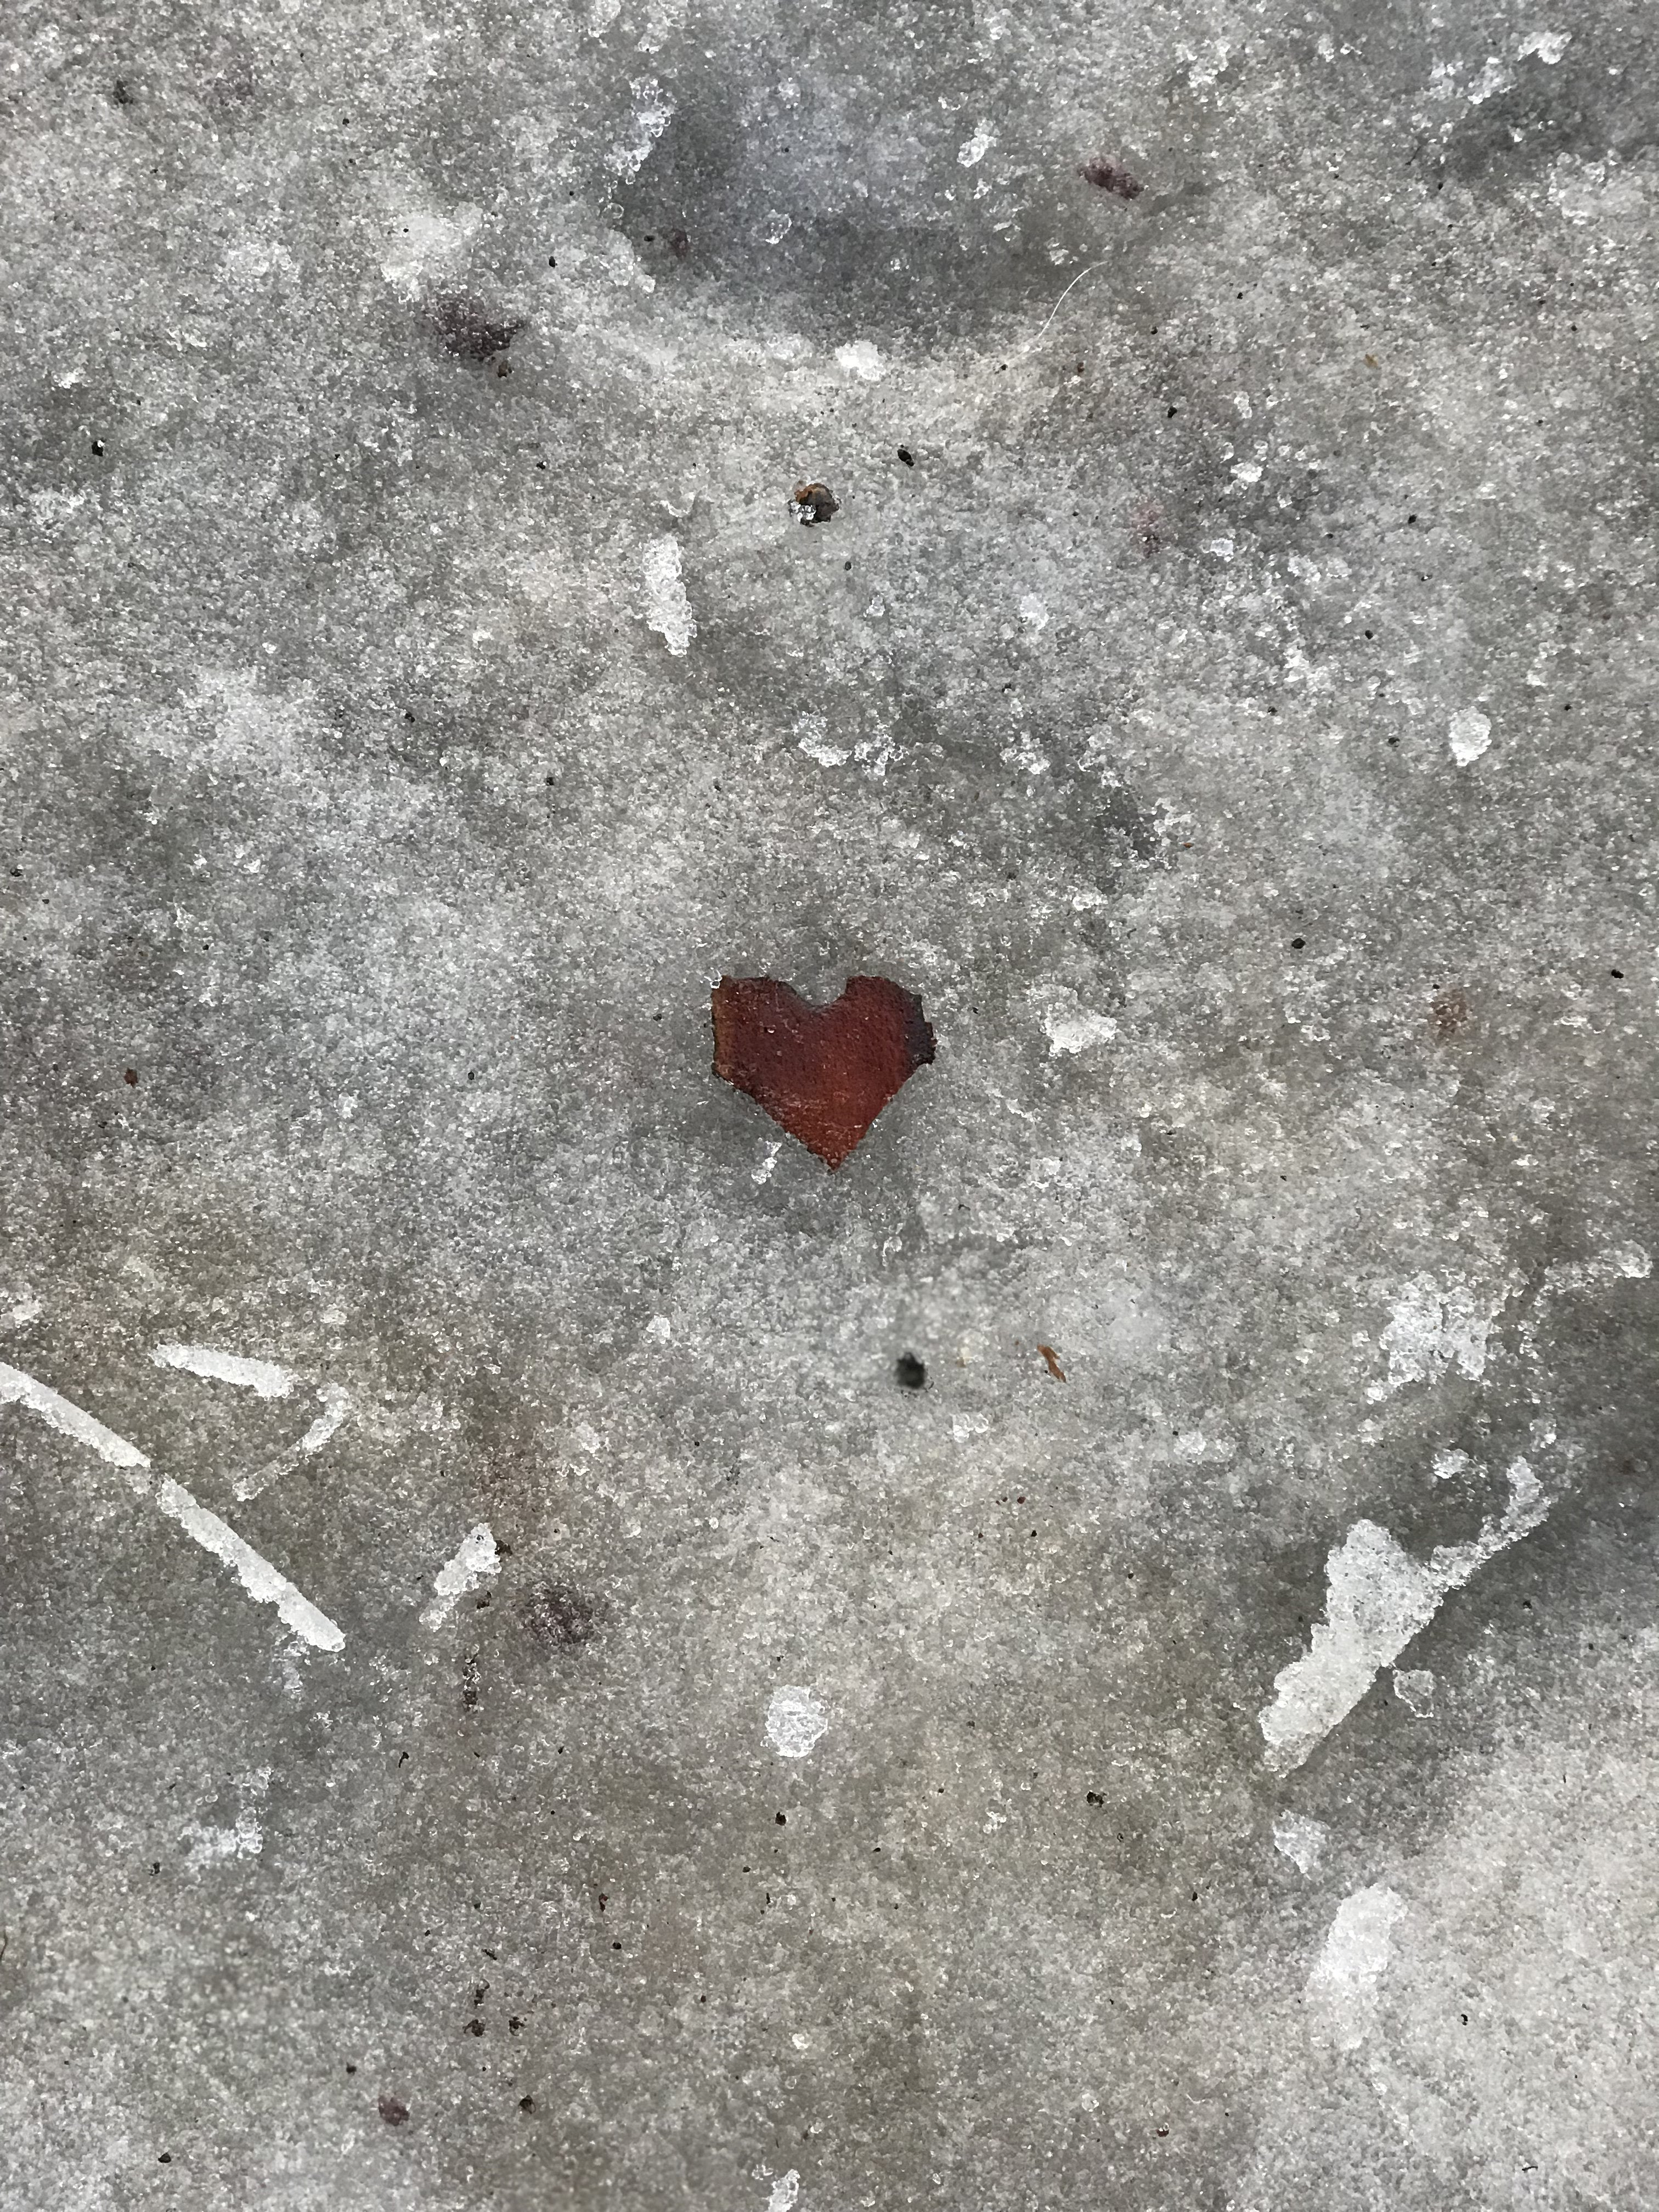 original fine art photography print of a heart in nature